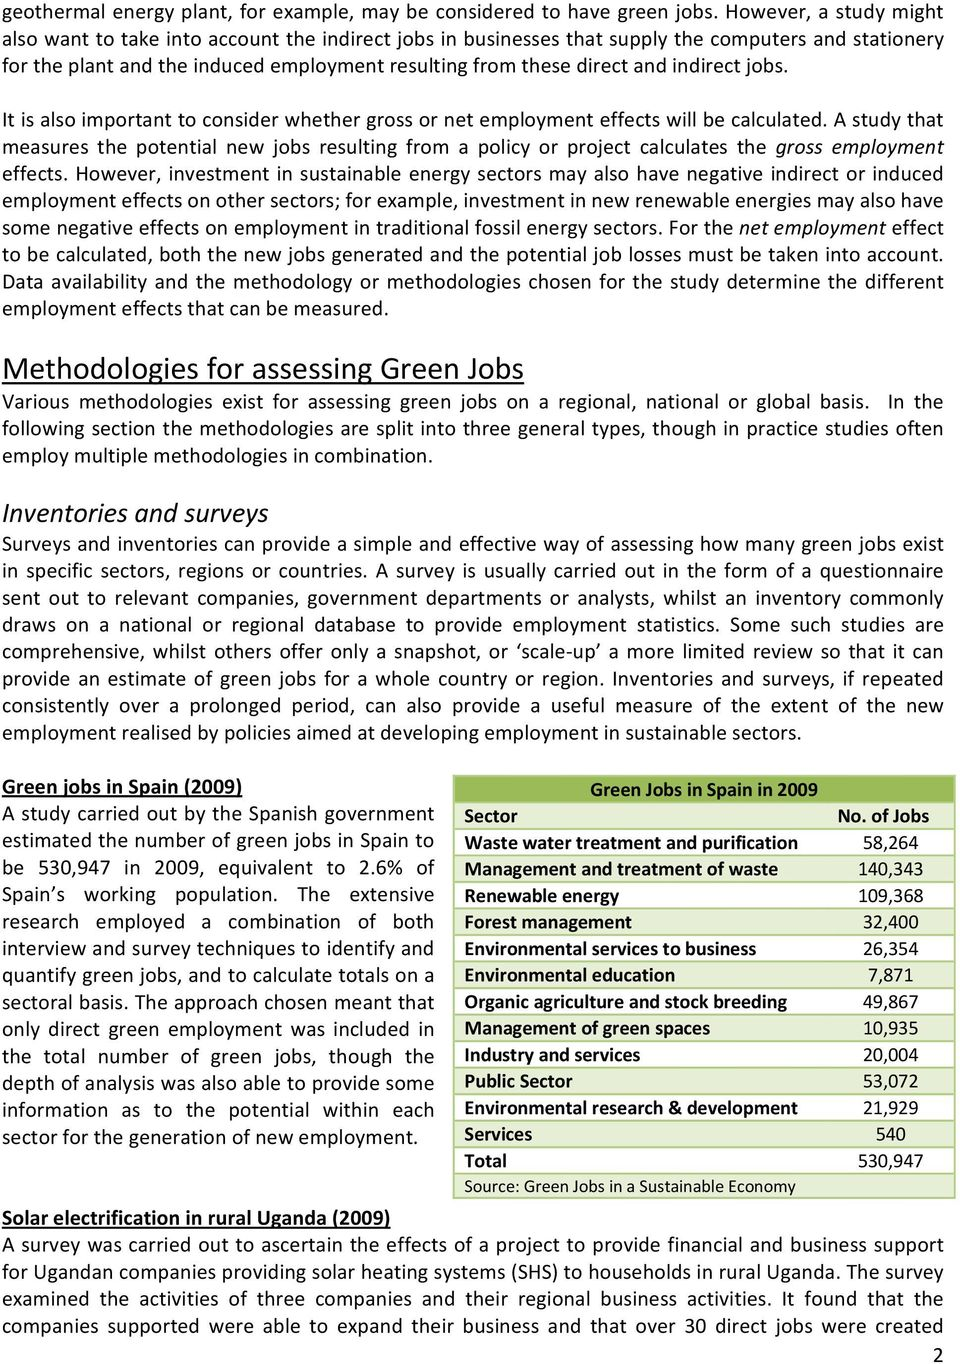 indirect jobs. It is also important to consider whether gross or net employment effects will be calculated.